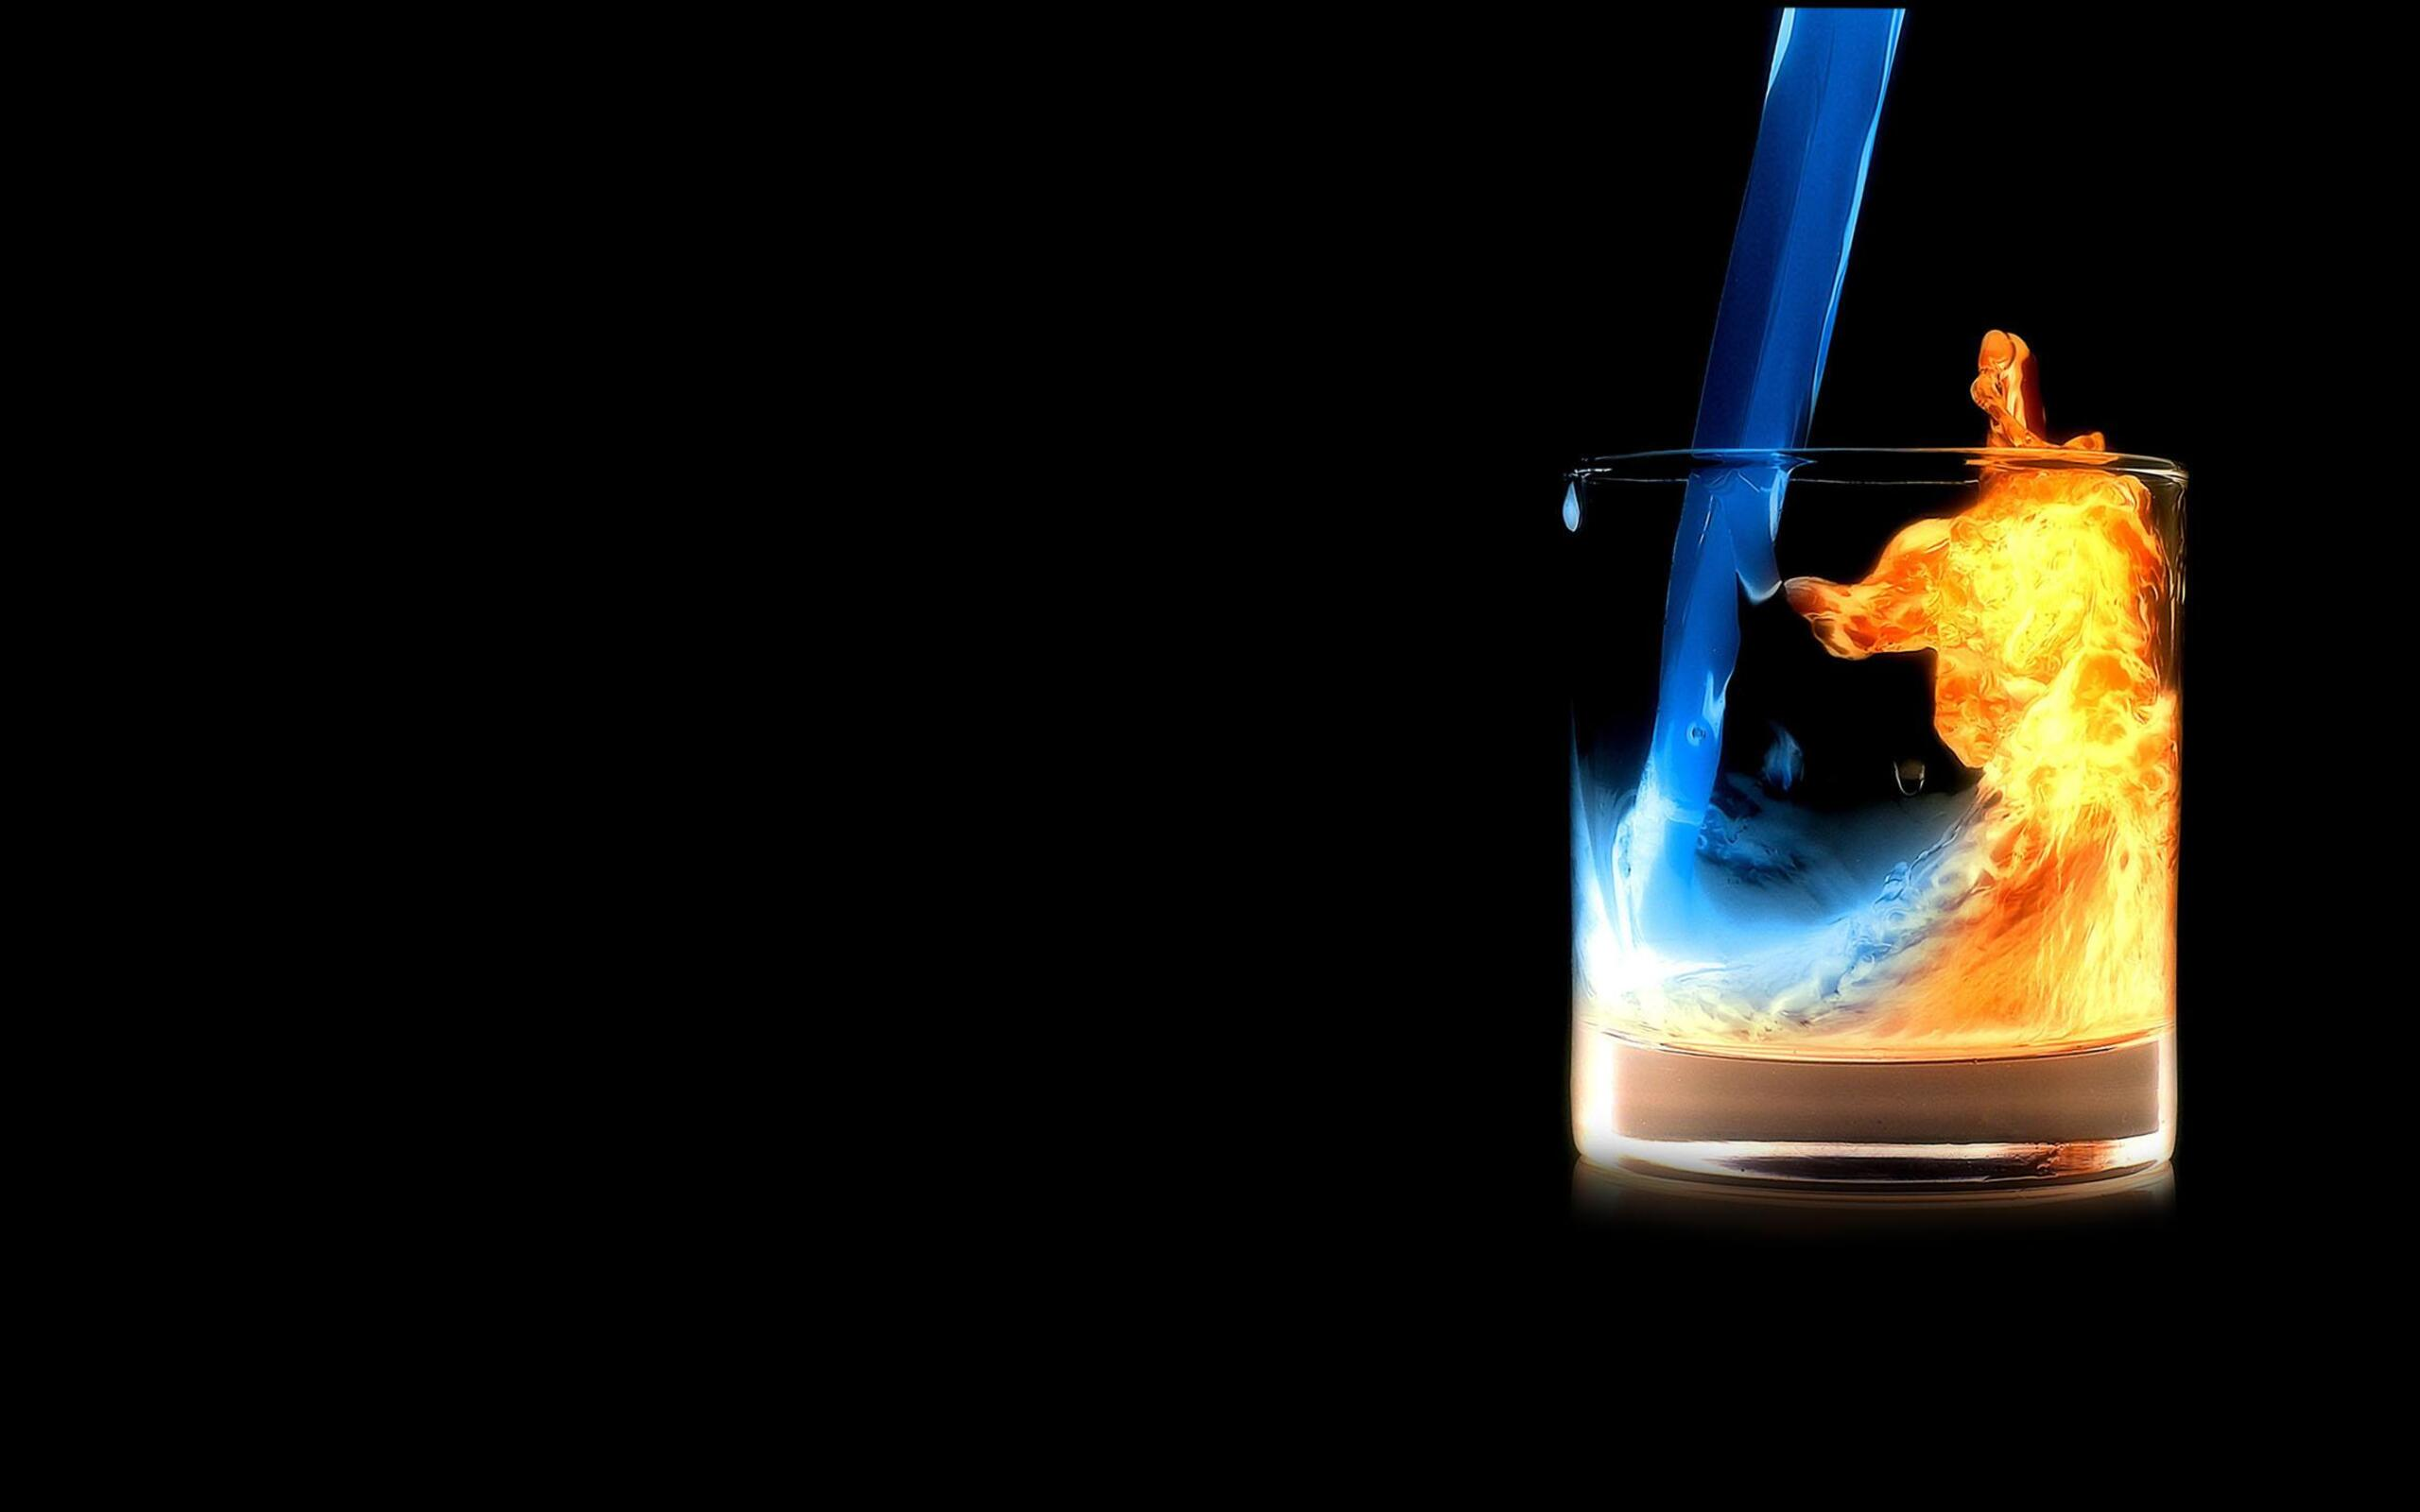 fire-water-in-glass-po.jpg